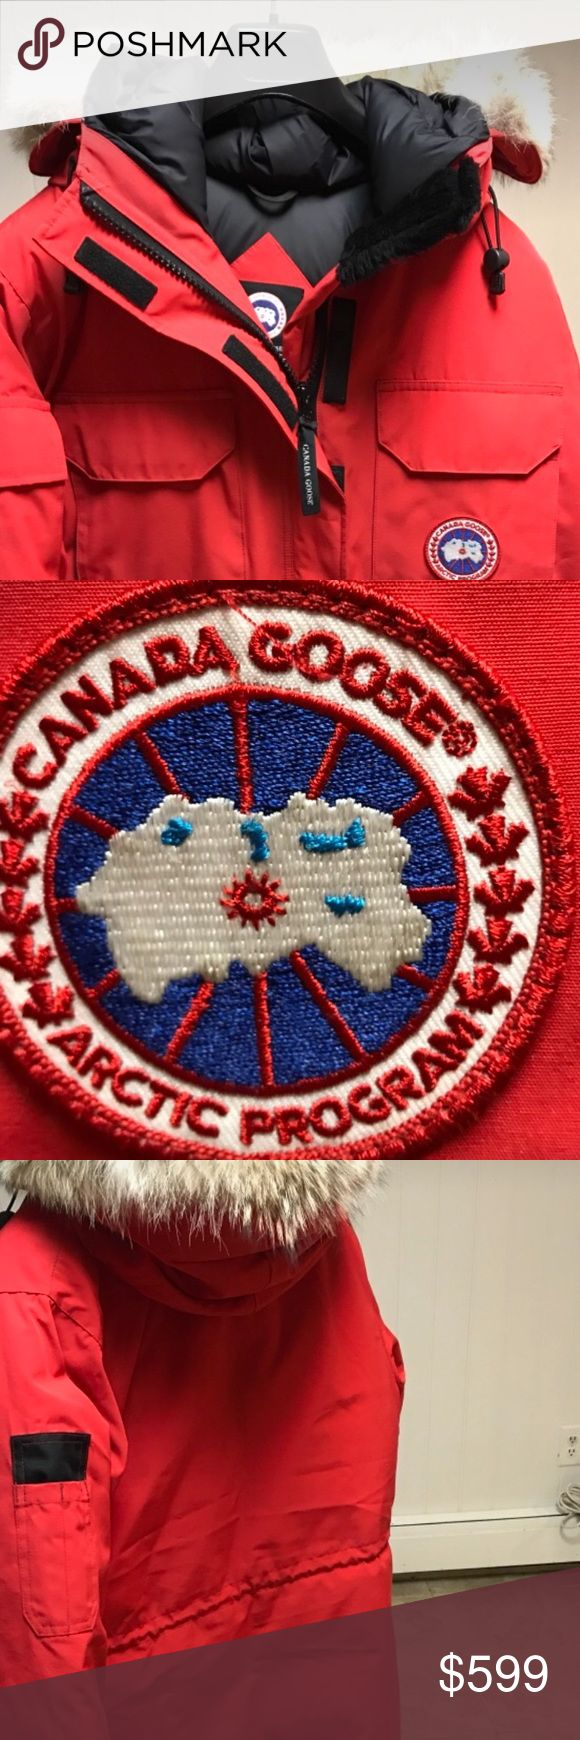 Canada Goose Authentic Womens Expedition Parka S XL (12-14) only worn a few times. Is in mint condition! MSRP is $995 Canada Goose Jackets & Coats